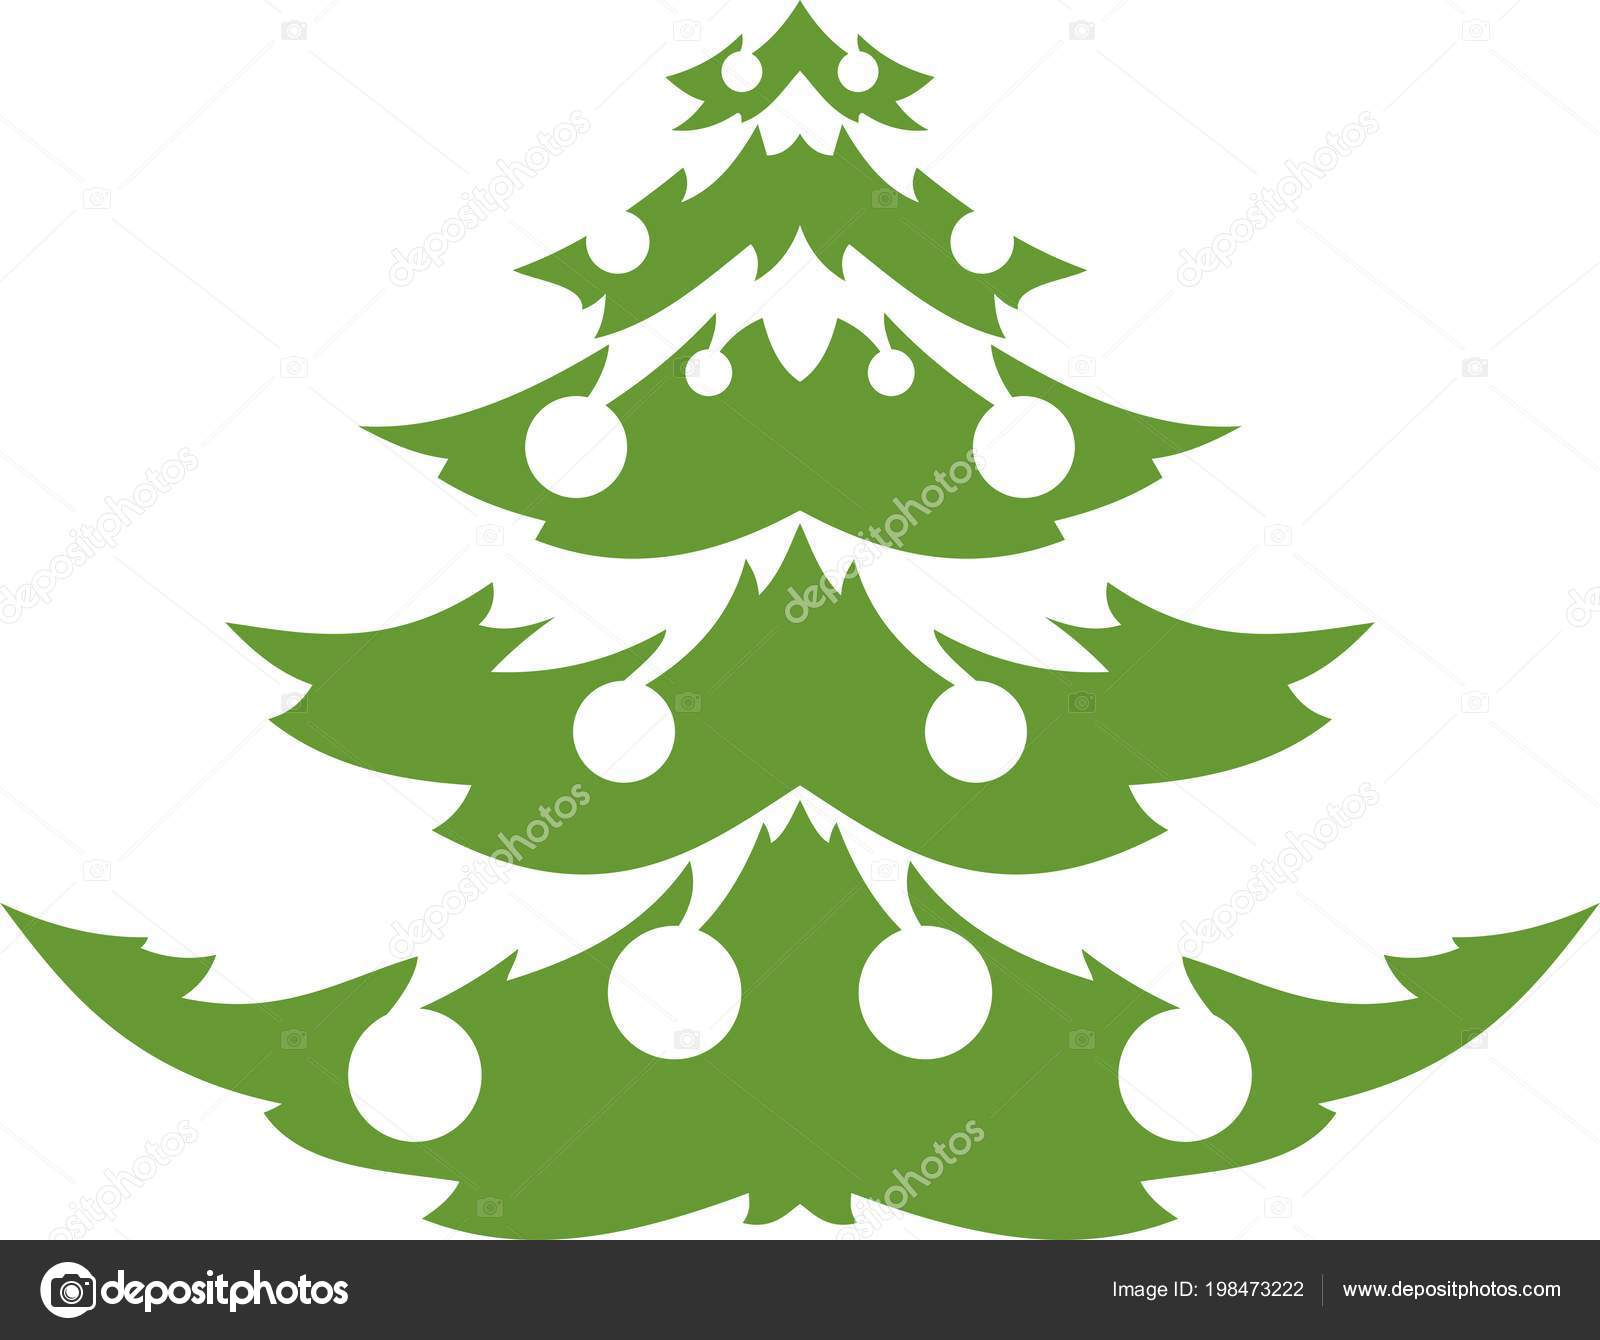 Christmas Trees Silhouette.Christmas Trees Silhouette White Background Stock Vector